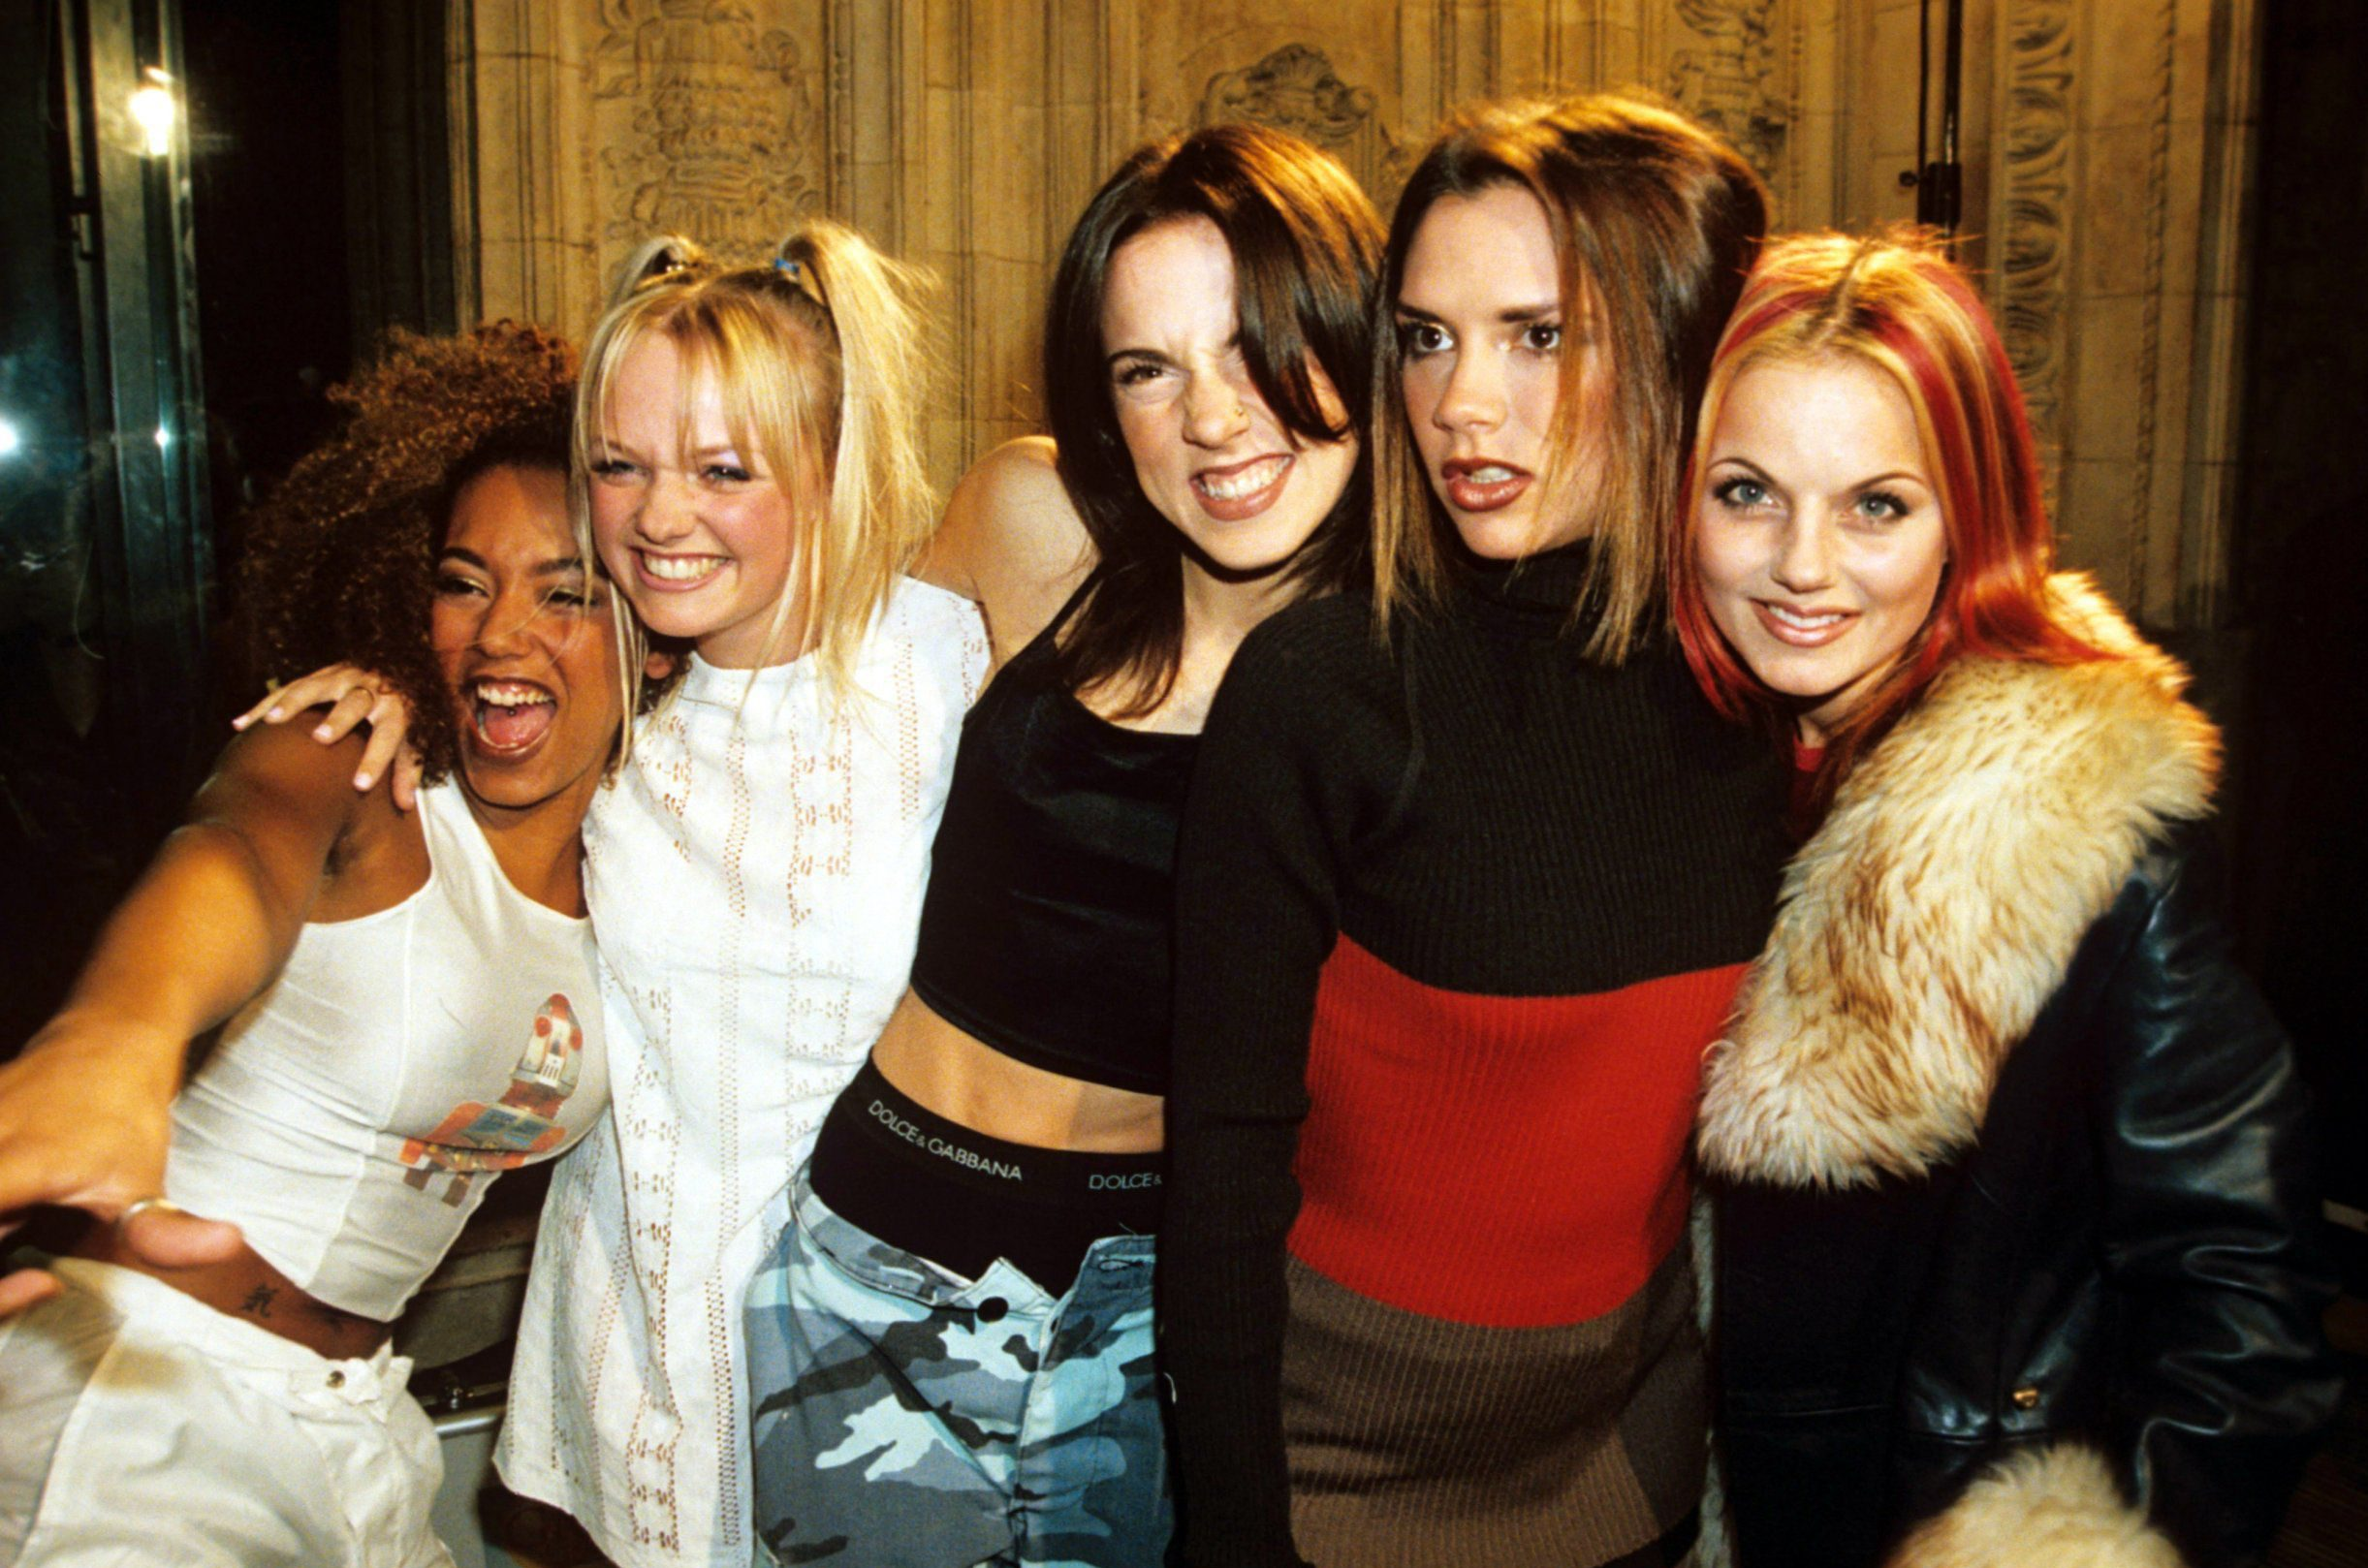 Mandatory Credit: Photo by Richard Young/REX/Shutterstock (264386bs) Spice Girls - Mel B, Emma Bunton, Mel C, Victoria Adams and Geri Halliwell NATIONAL TELEVISION AWARDS, LONDON, BRITAIN - 1996